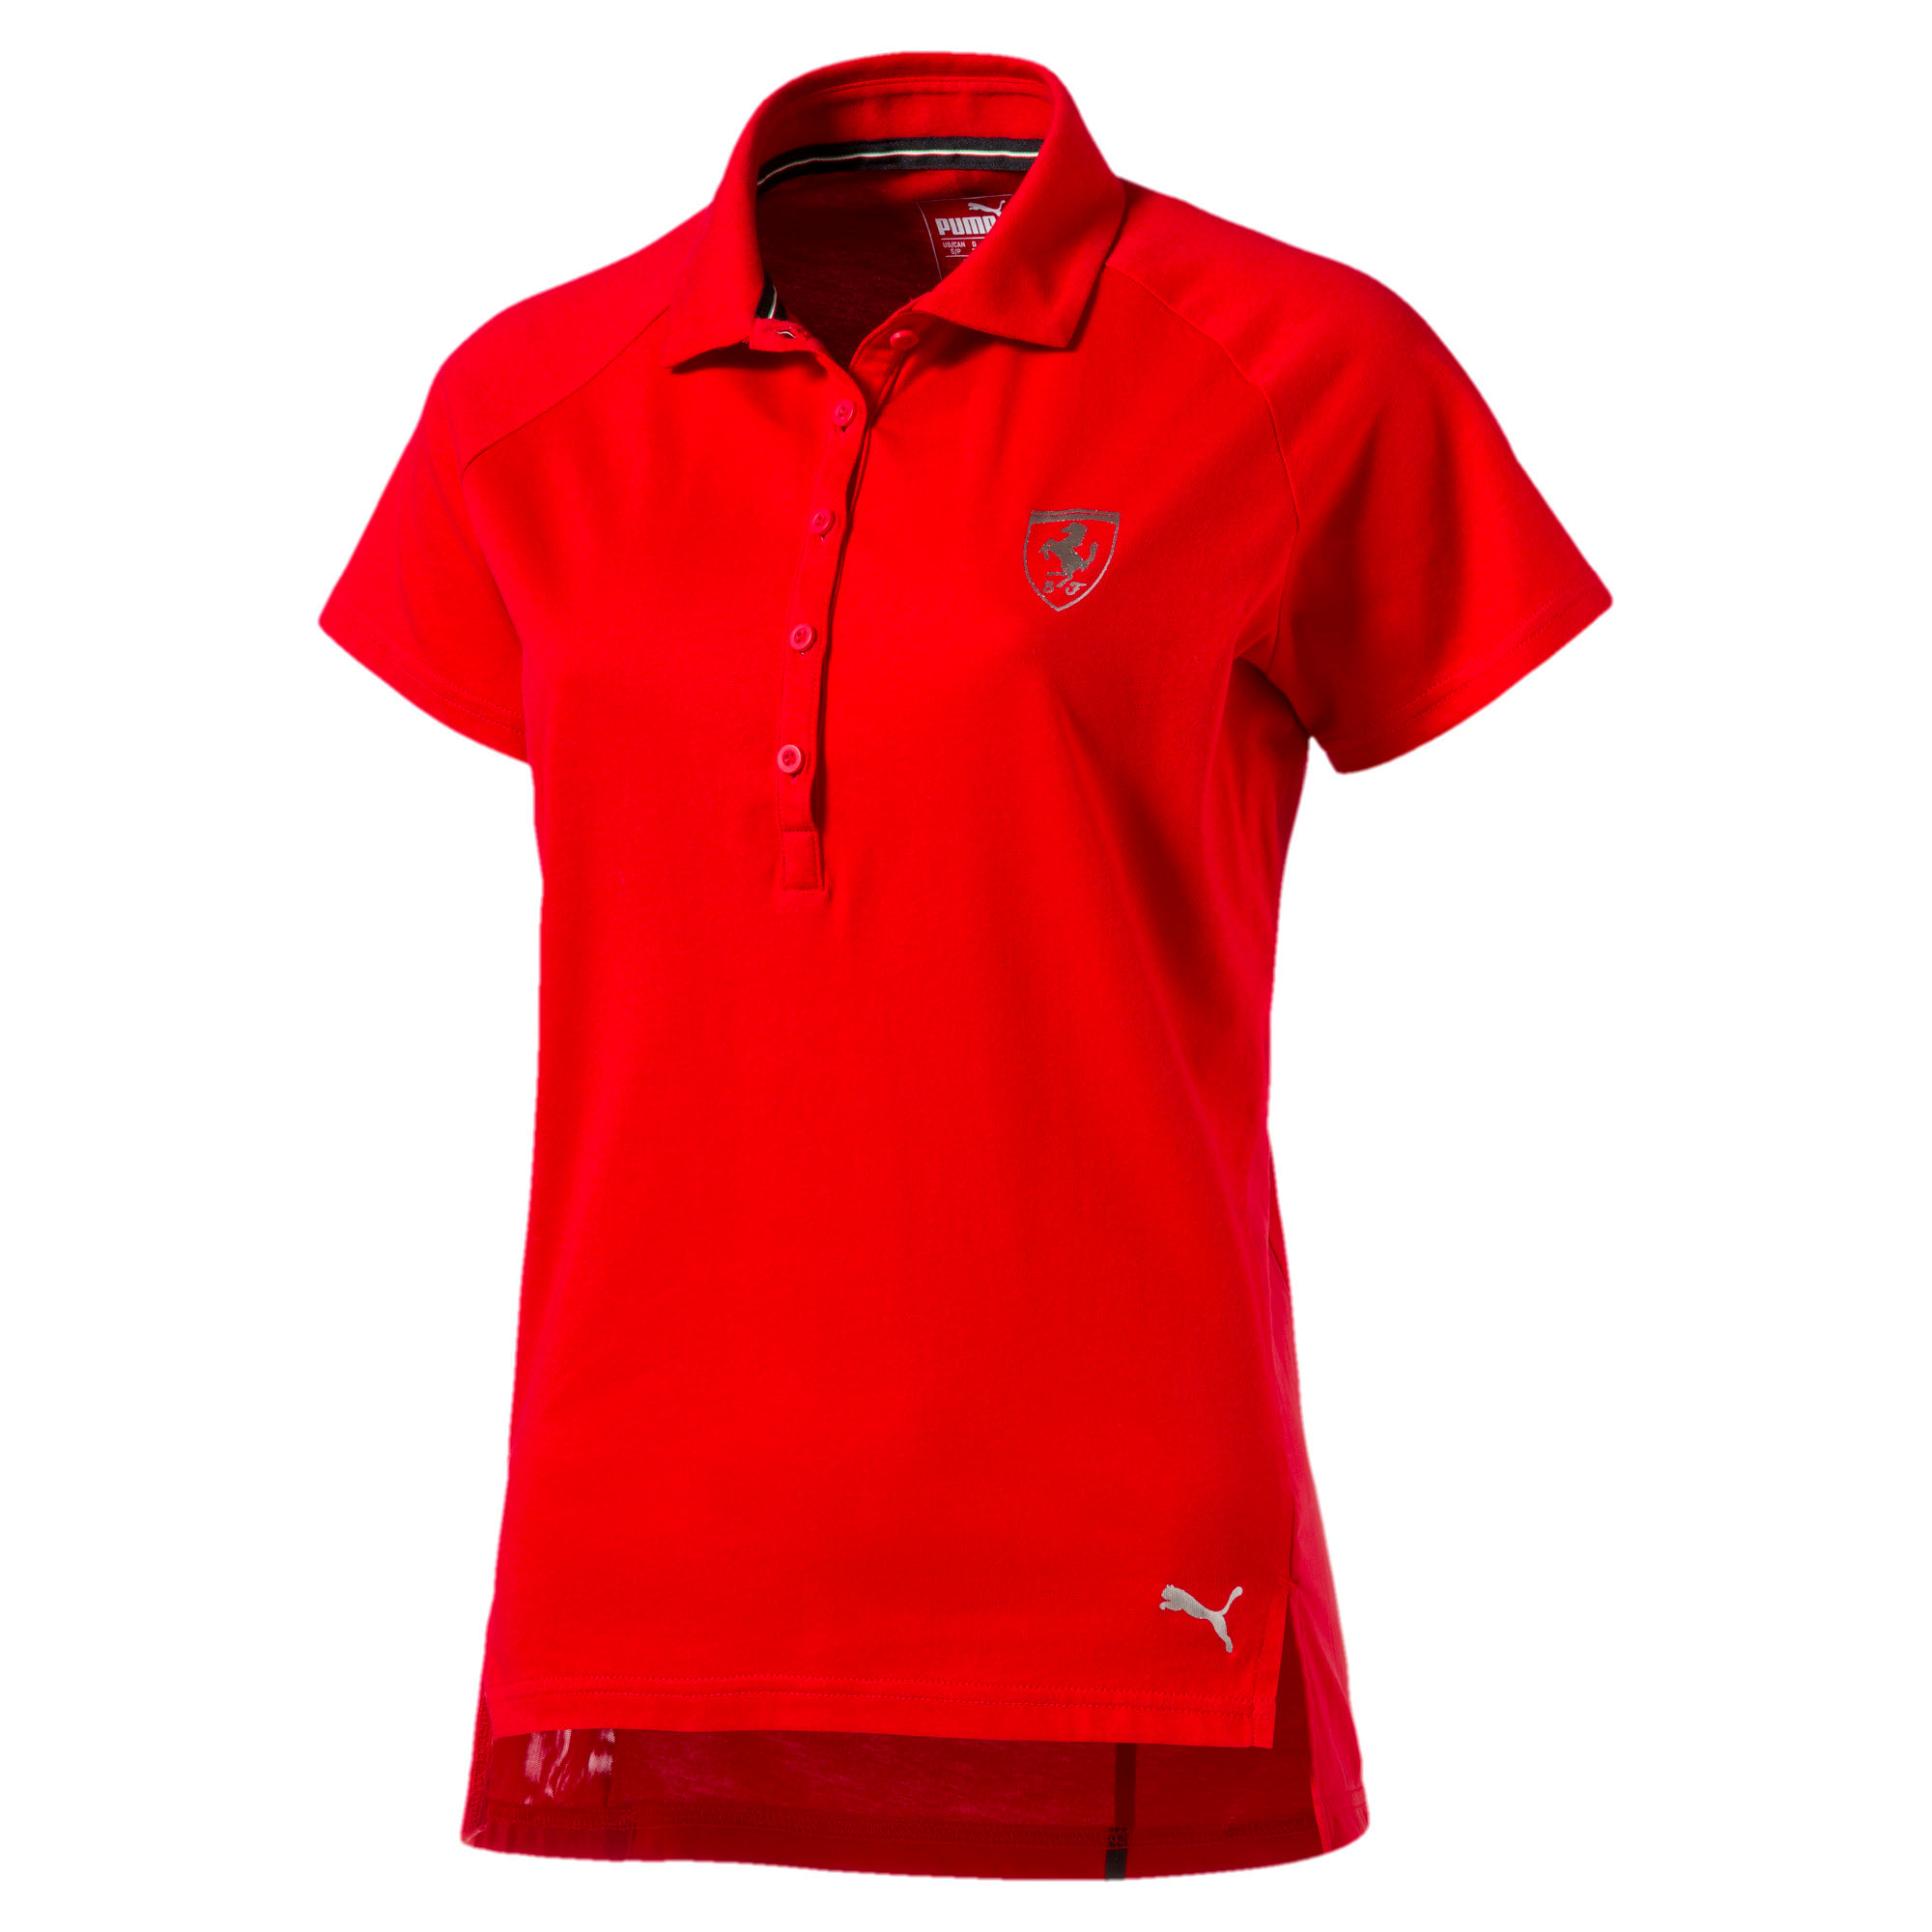 Thumbnail 4 of Ferrari Women's Polo, Rosso Corsa, medium-IND